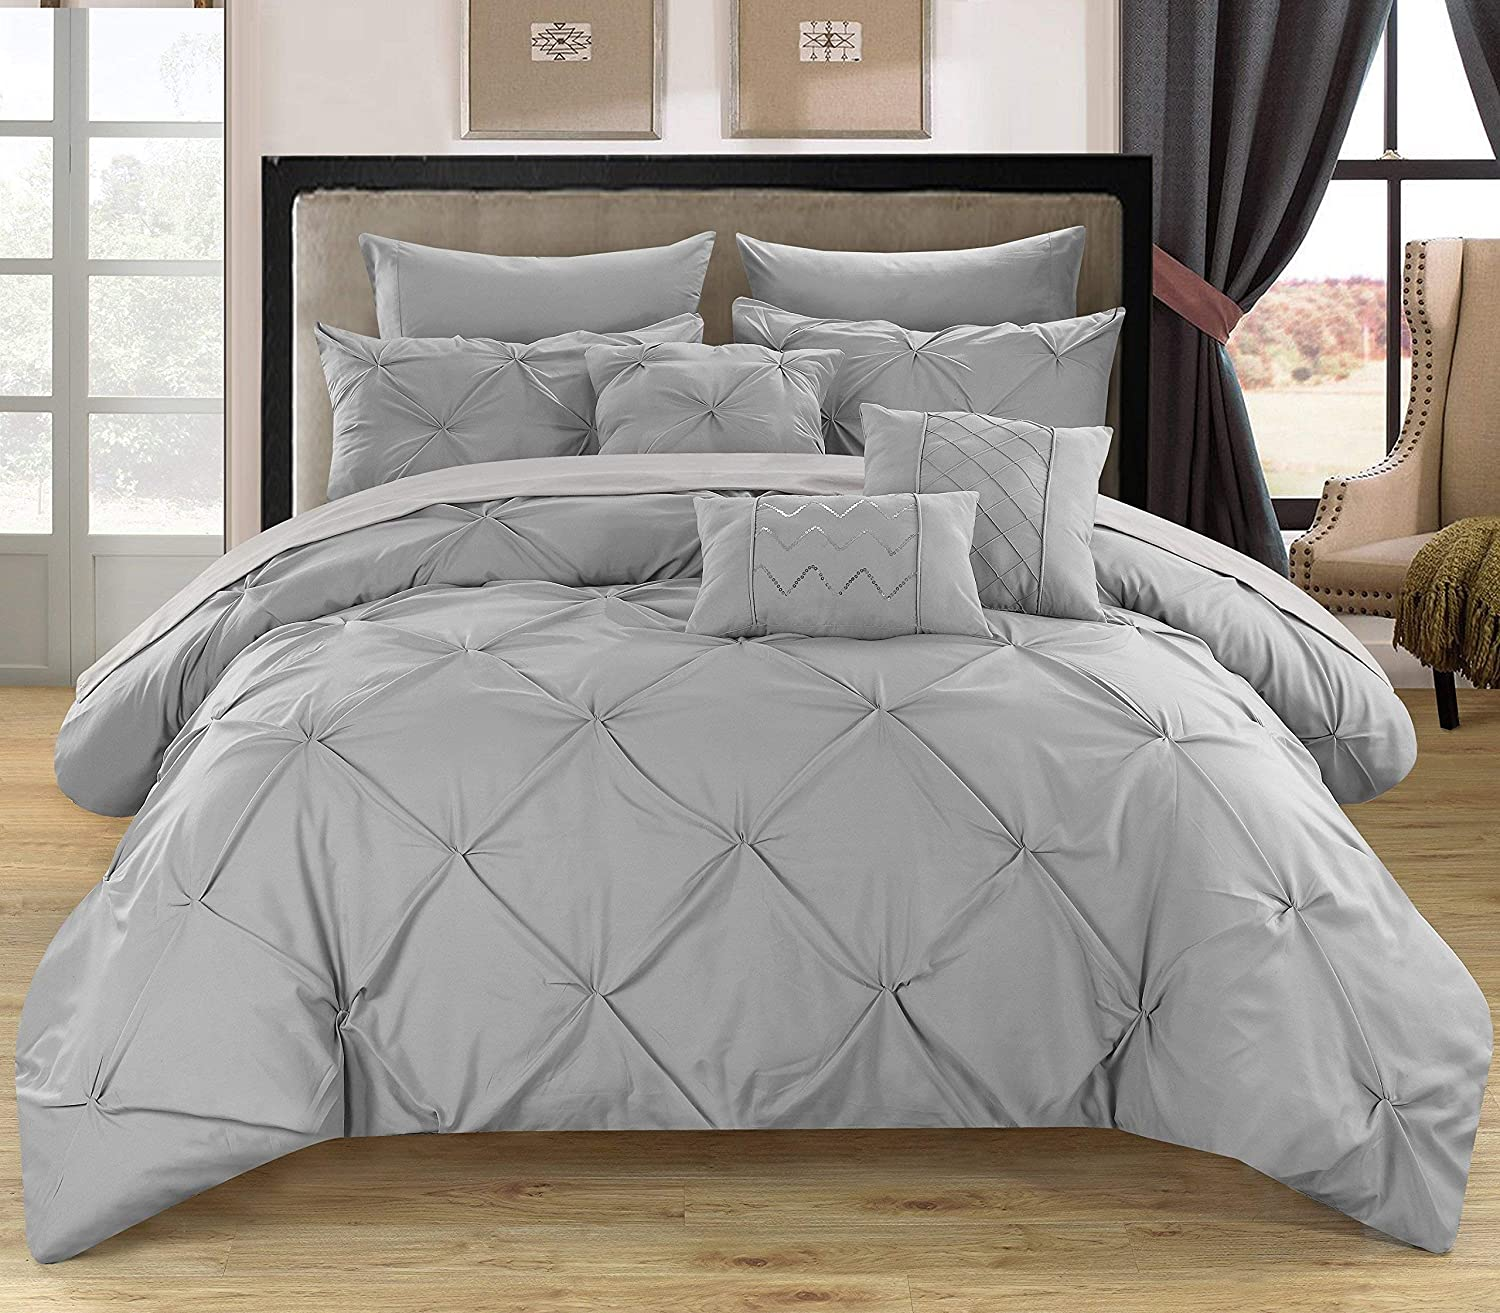 Chic Home 8 Piece Hannah Pinch, Ruffled and Pleated Complete Twin Bed in a Bag Comforter Silver Sheets Set and Deocrative Pillows Included